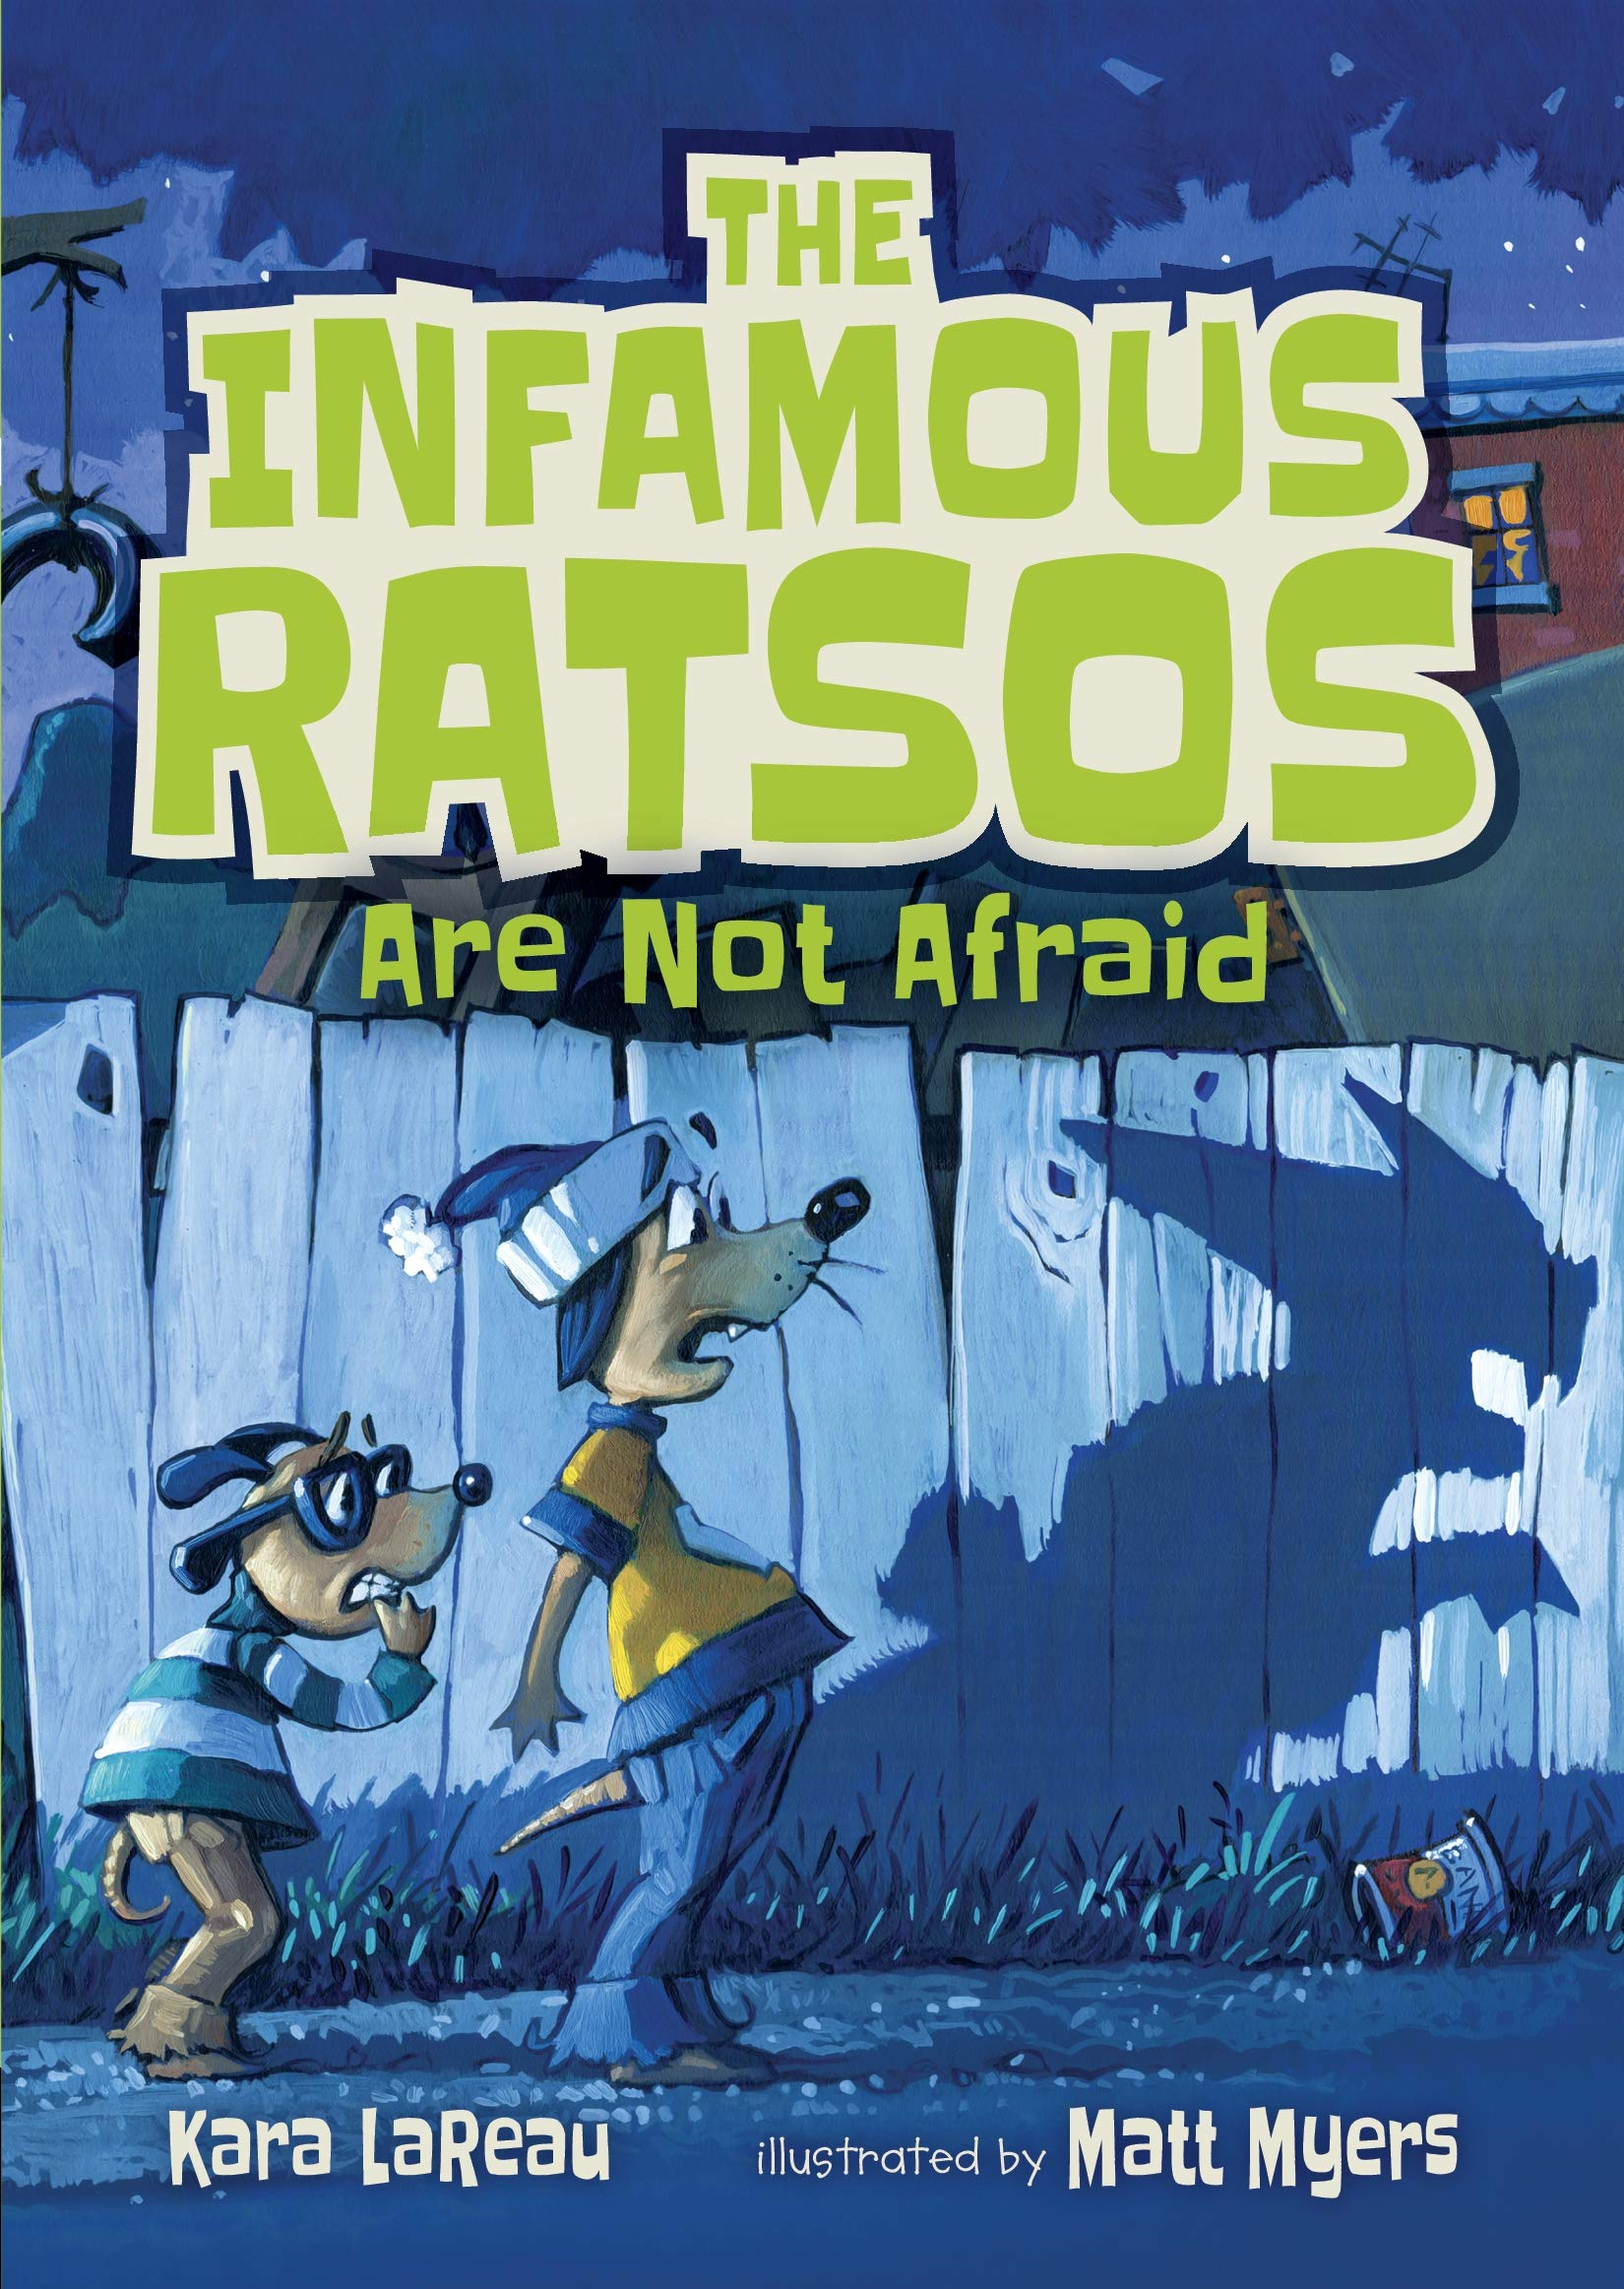 The Infamous Ratsos Are Not Afraid ebook